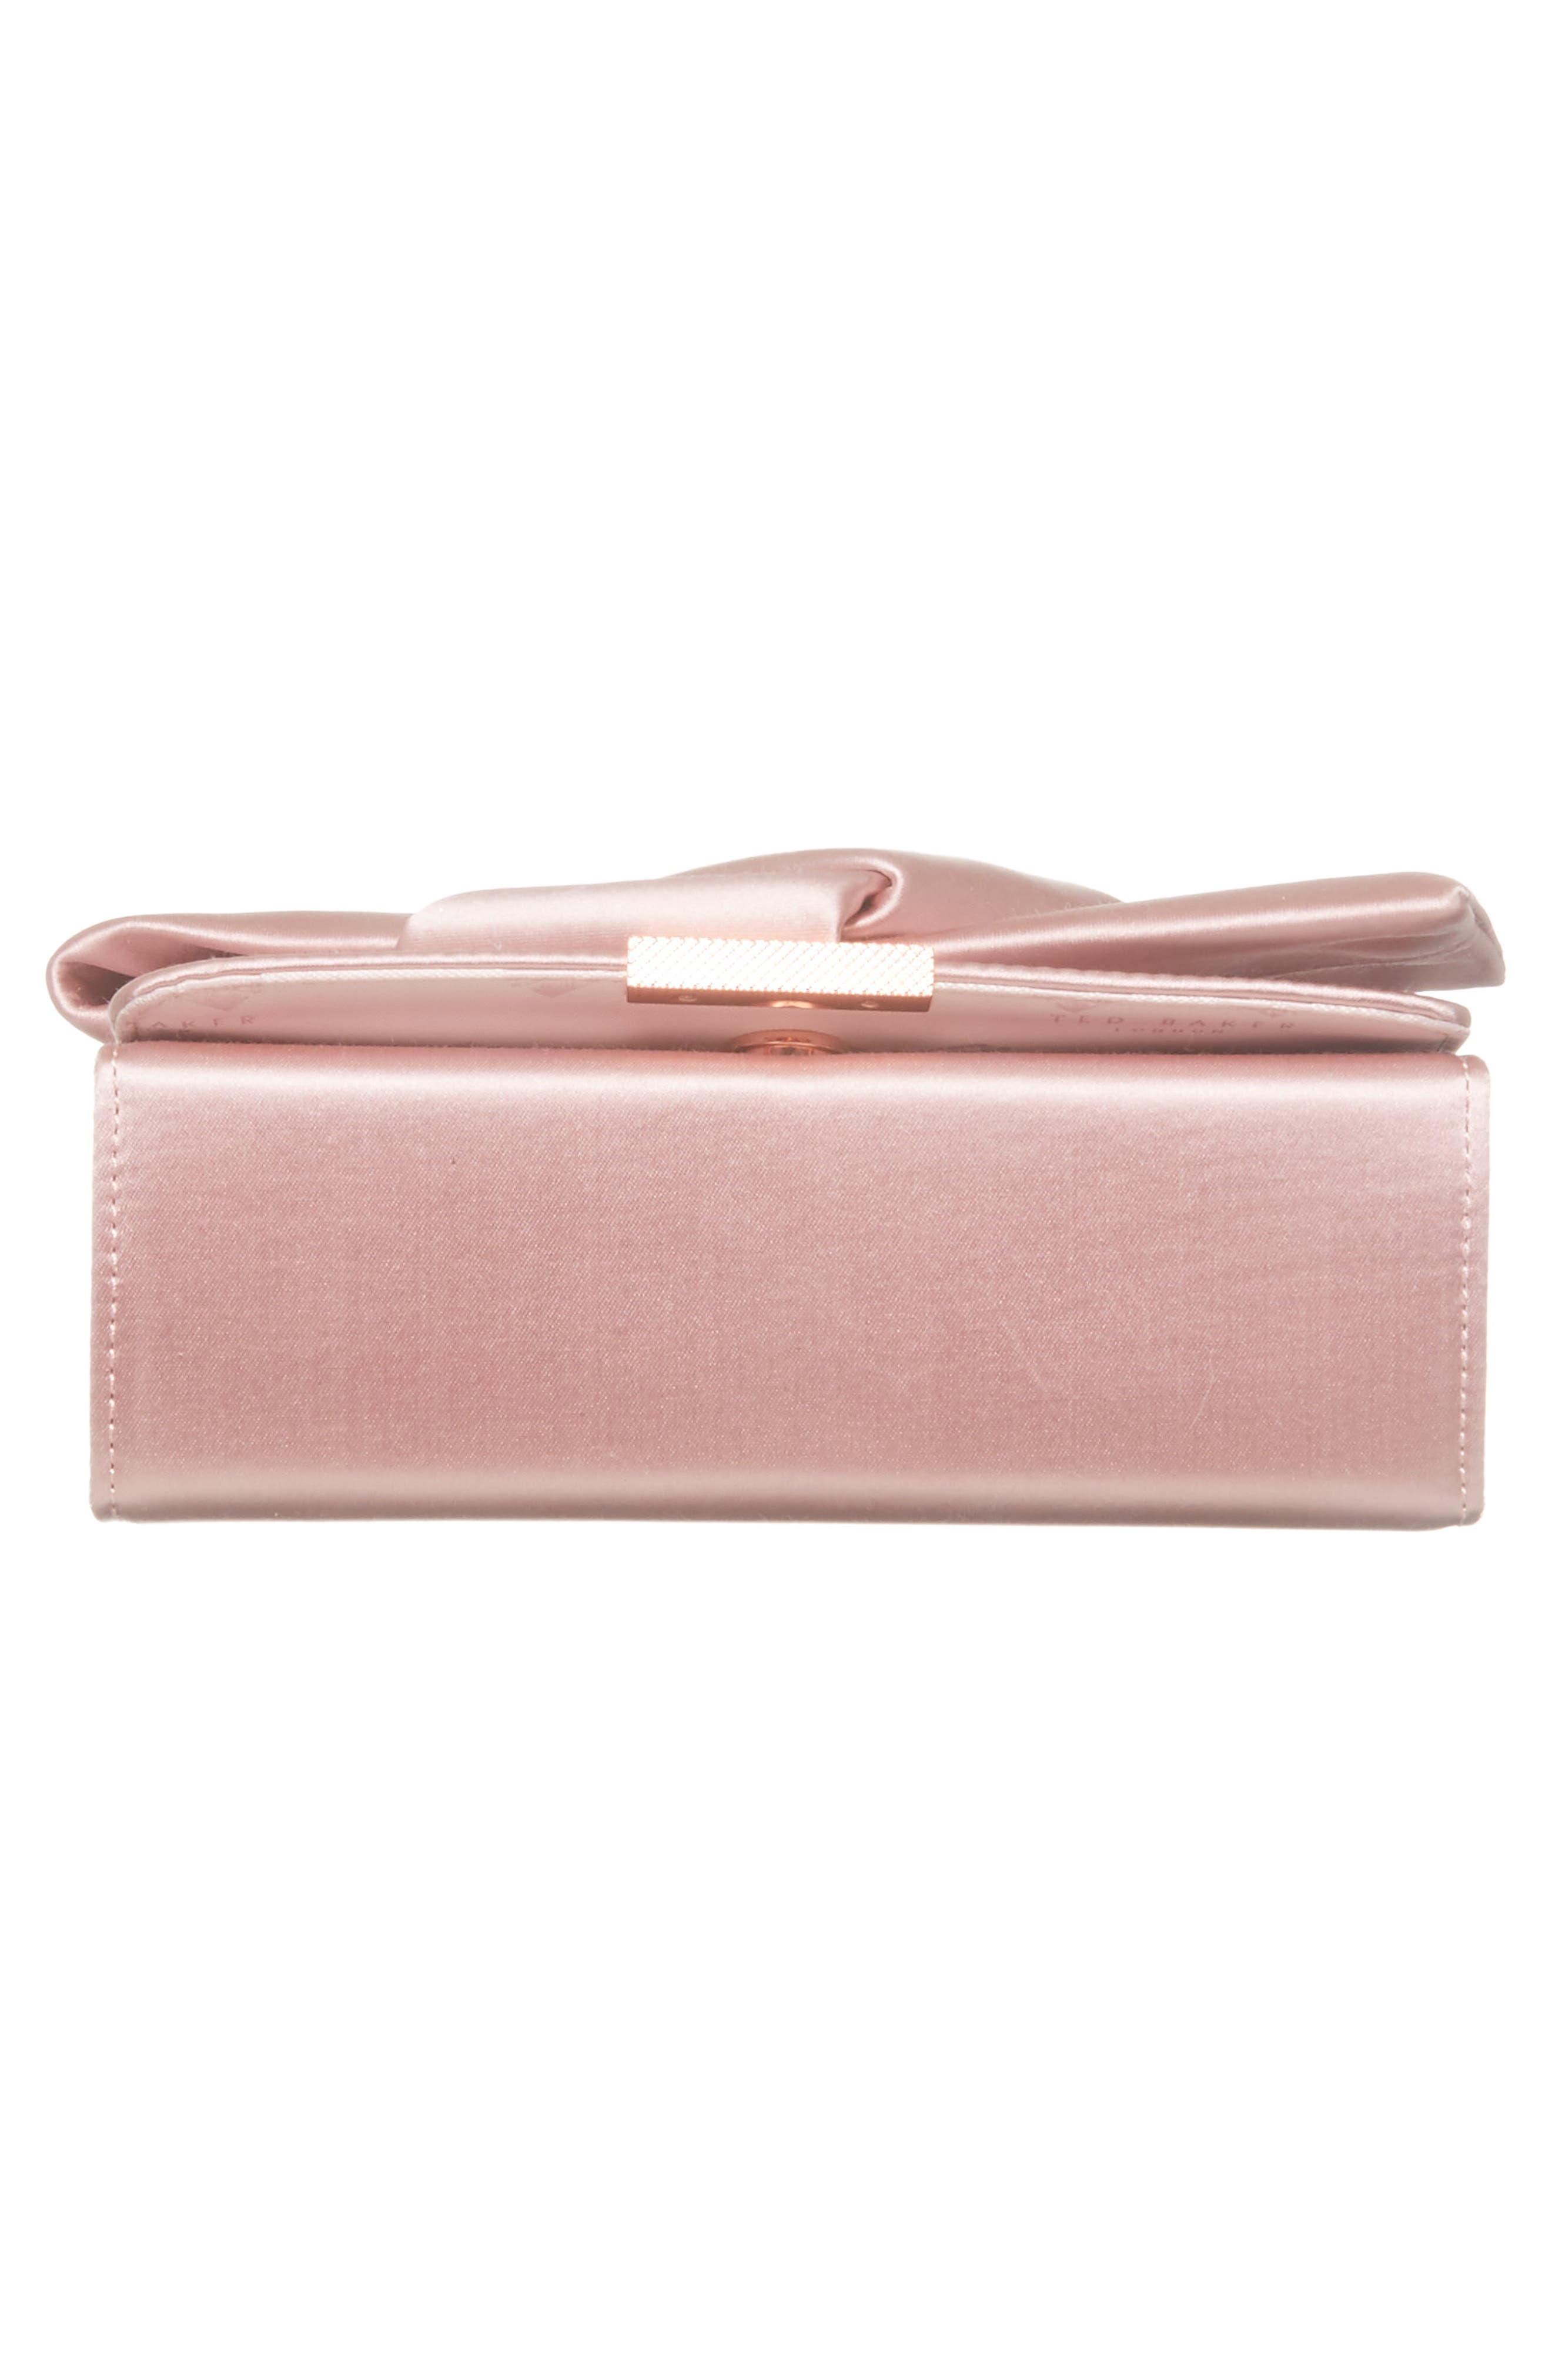 TED BAKER LONDON, Fefee Satin Knotted Bow Clutch, Alternate thumbnail 7, color, LIGHT PINK